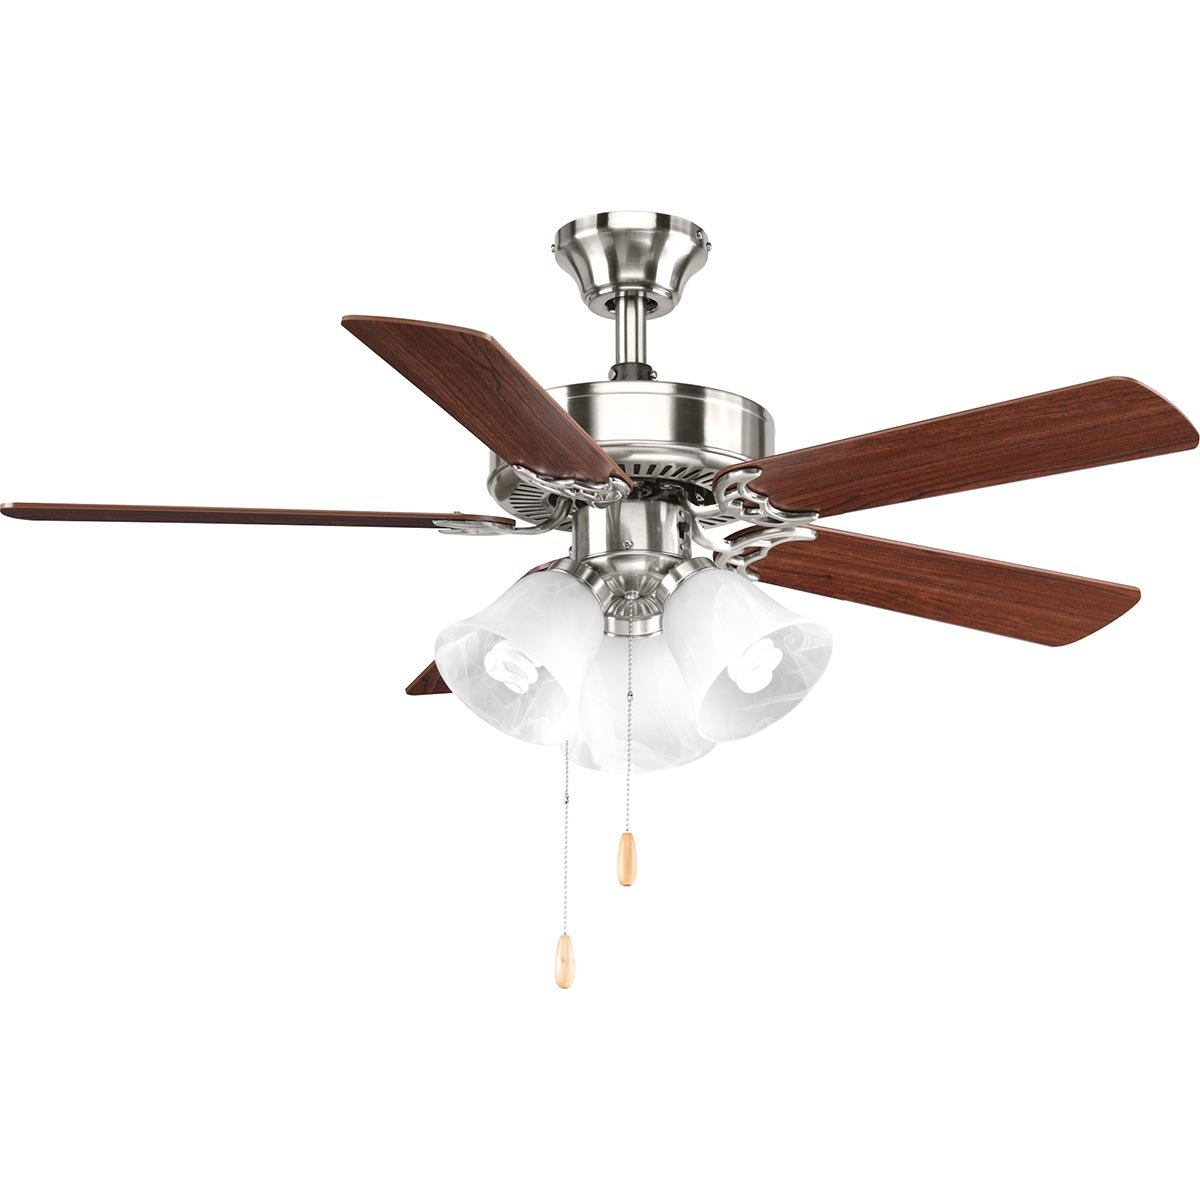 Progress Lighting P2500-09 42-Inch Fan with 5 Blades with Reversible Cherry/Natural Cherry Blades, Brushed Nickel by Progress Lighting (Image #3)